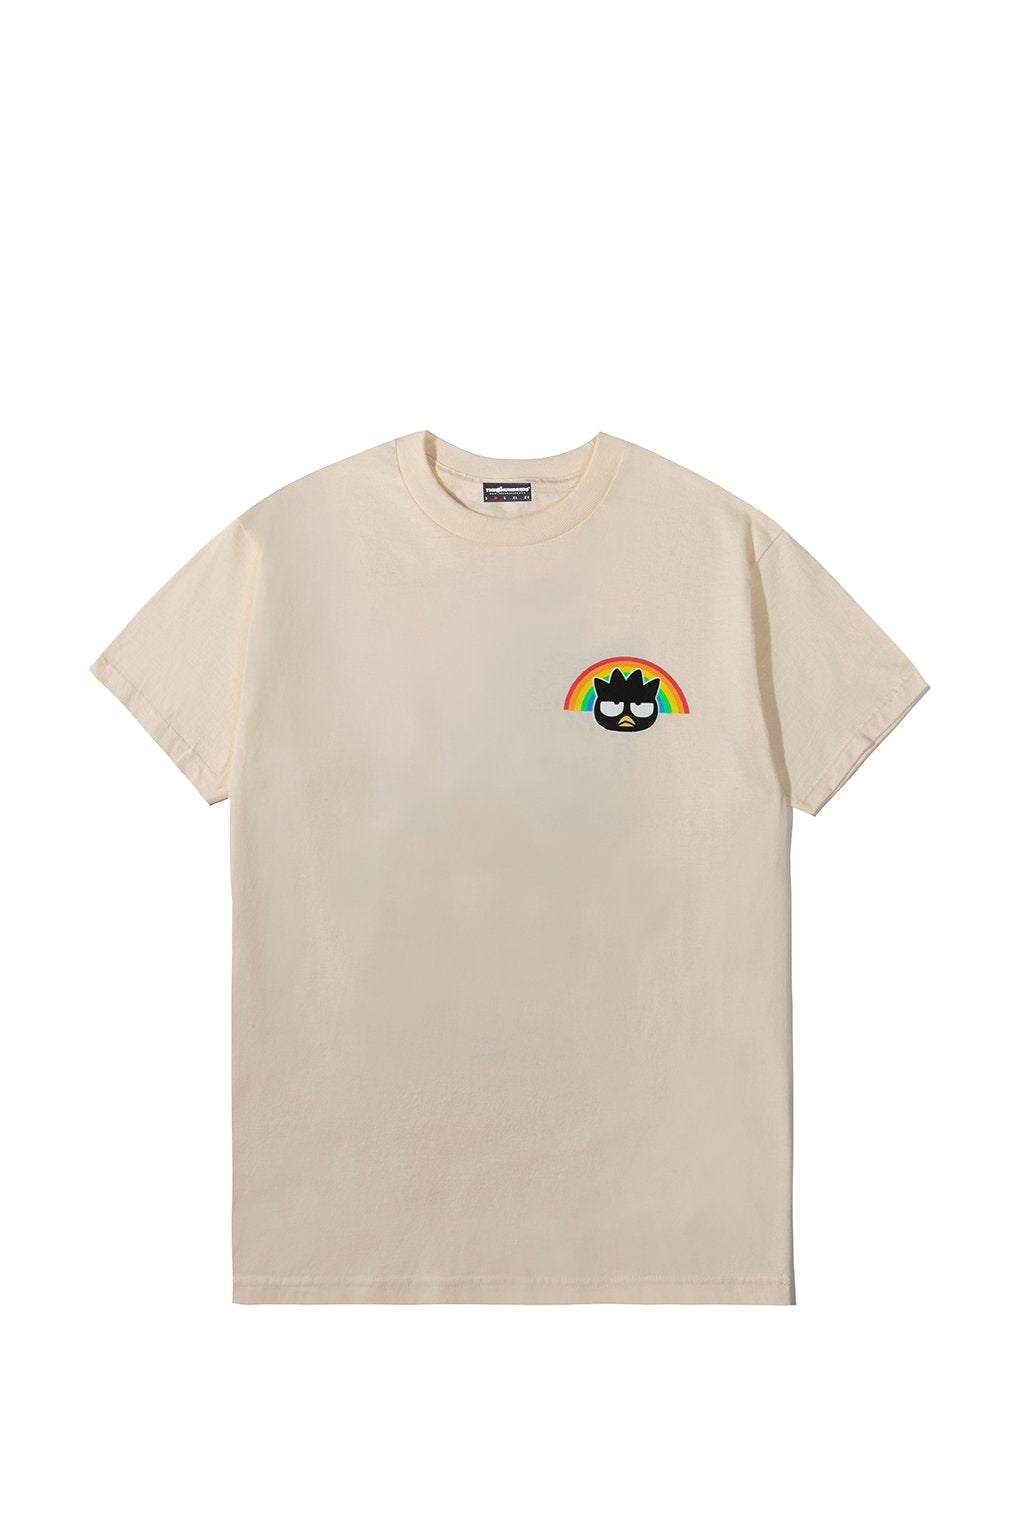 The Hundreds x Sanrio Badtz-Maru T-Shirt in Cream xld